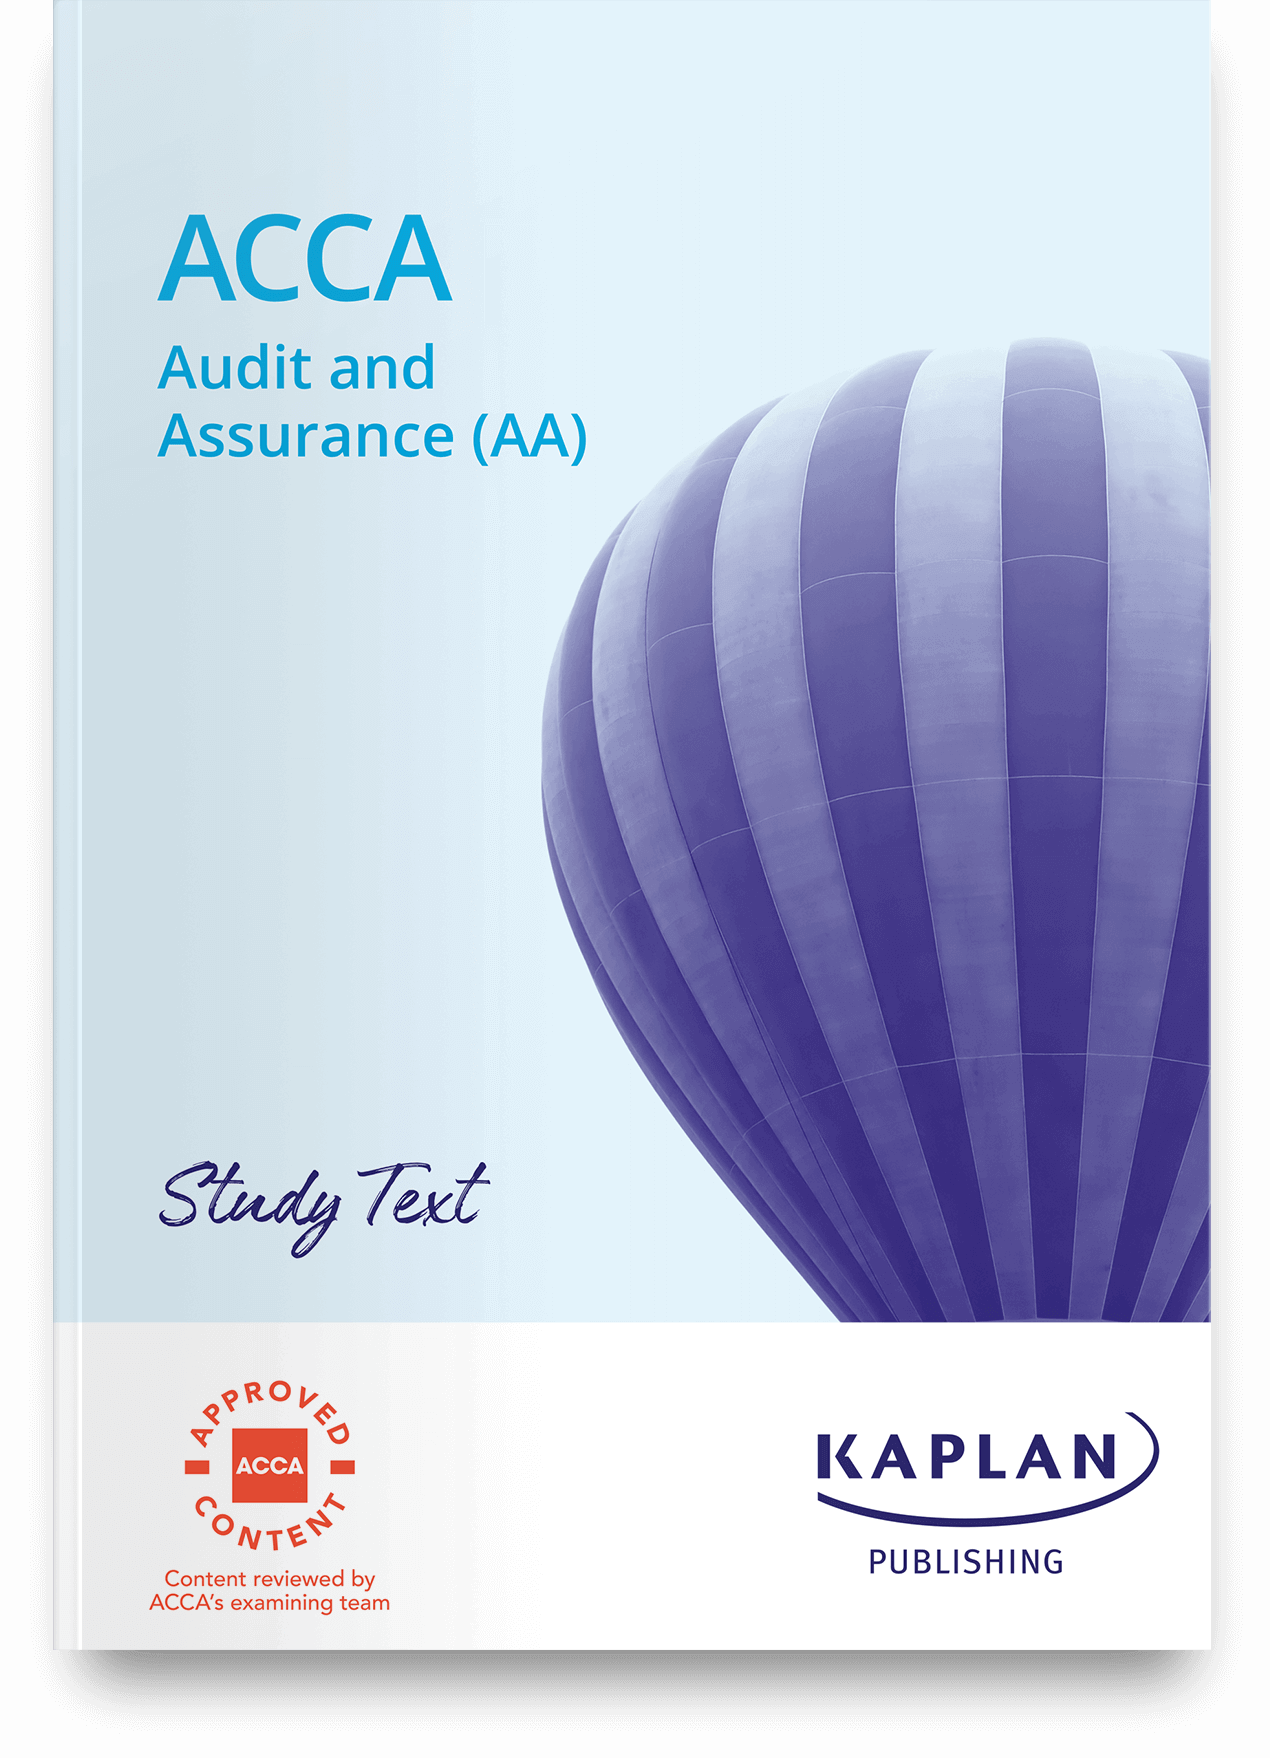 ACCA Fundamentals - Audit and Assurance (AA) - Study Text